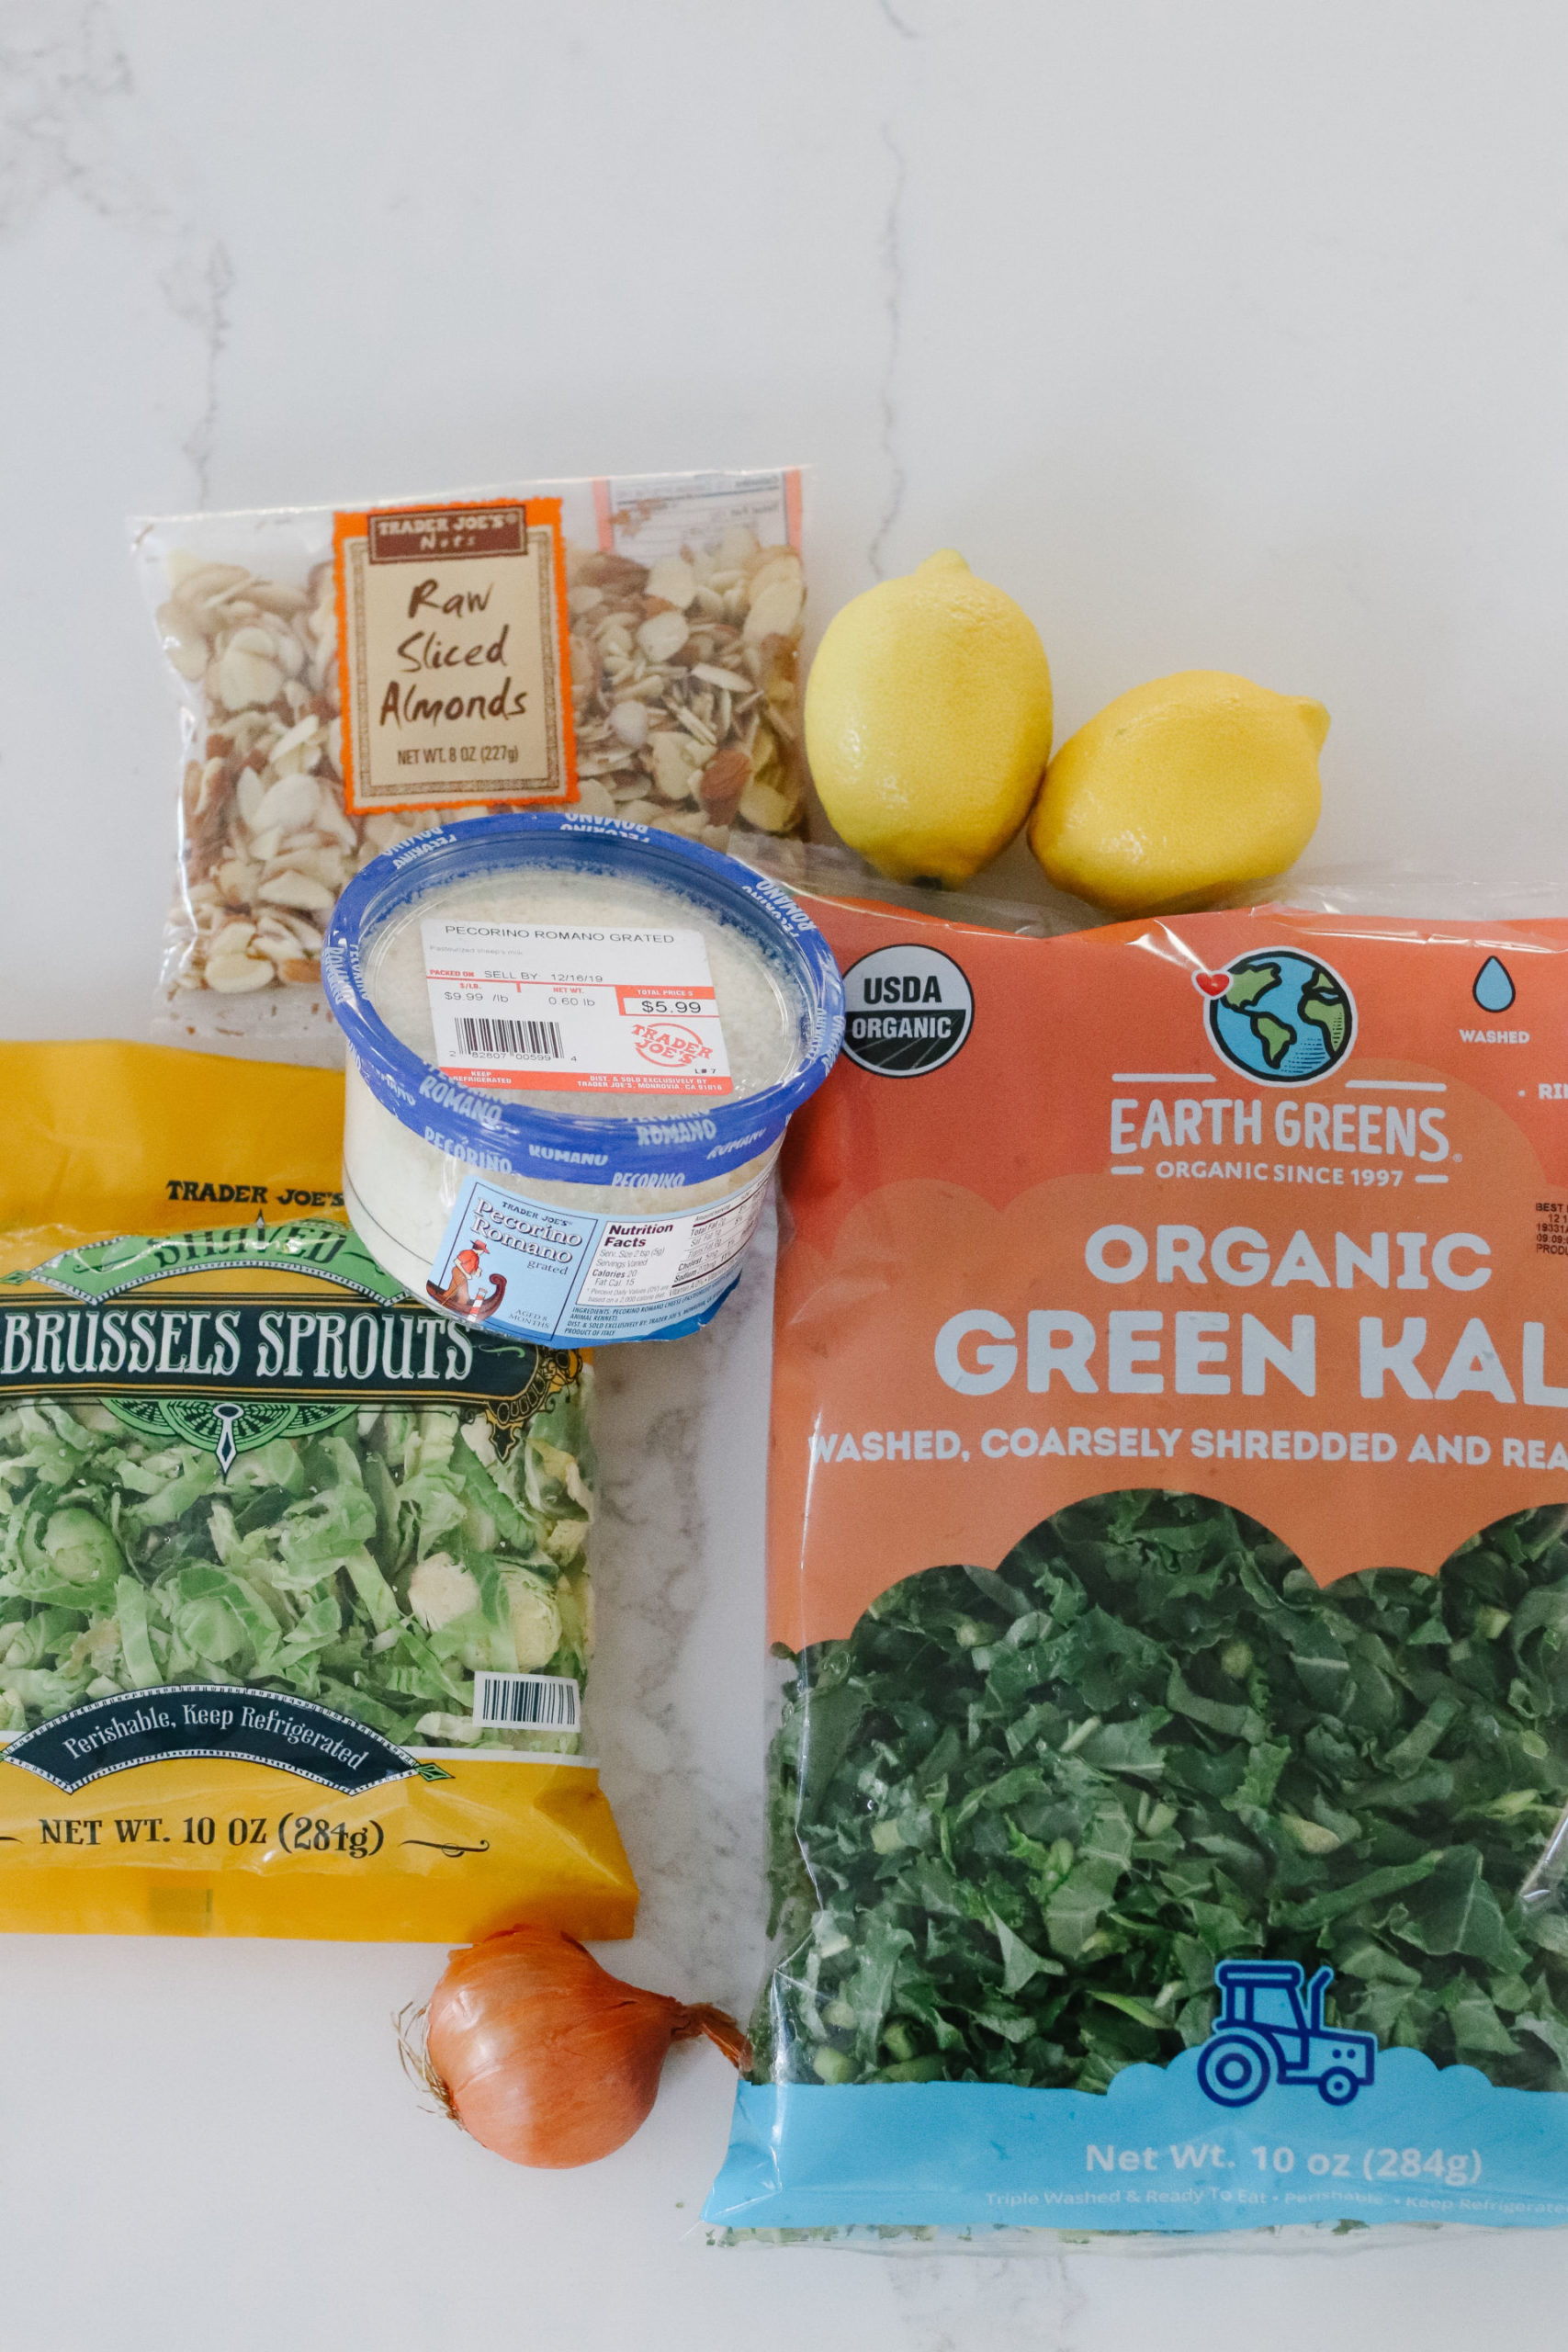 Kale & Brussels Sprouts salad ingredients